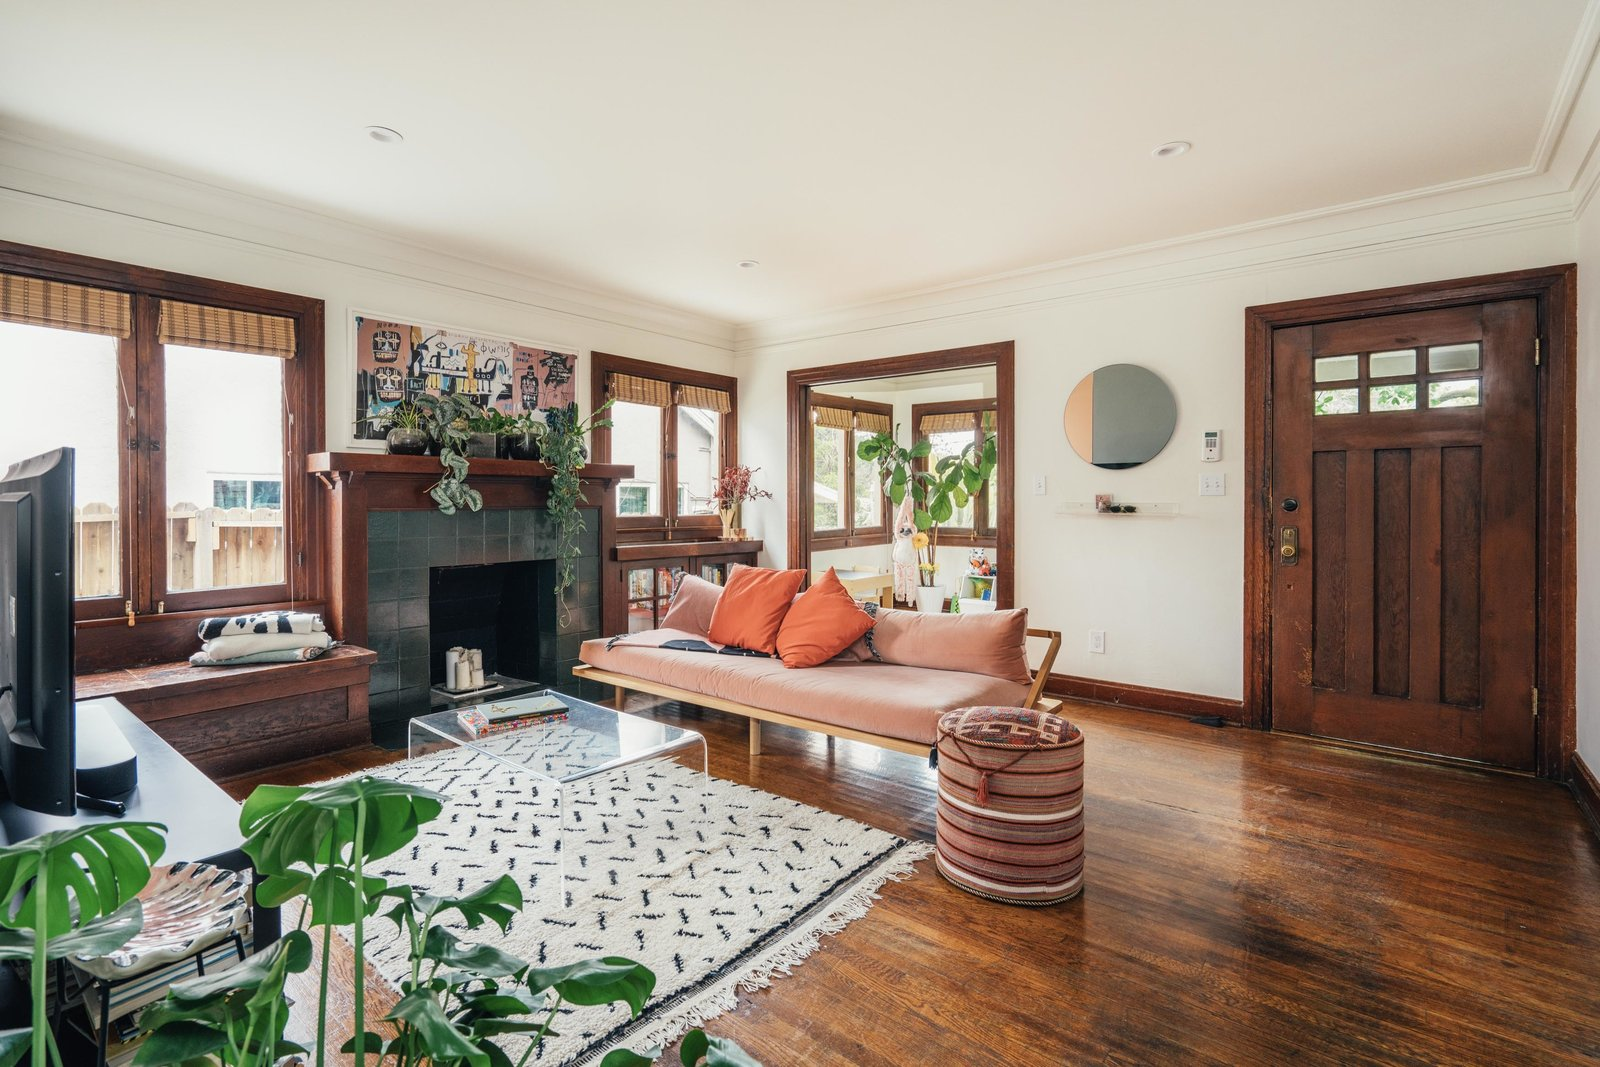 A Cheery Craftsman Duplex in L.A. With Adjacent Studio Space Asks $1.25M